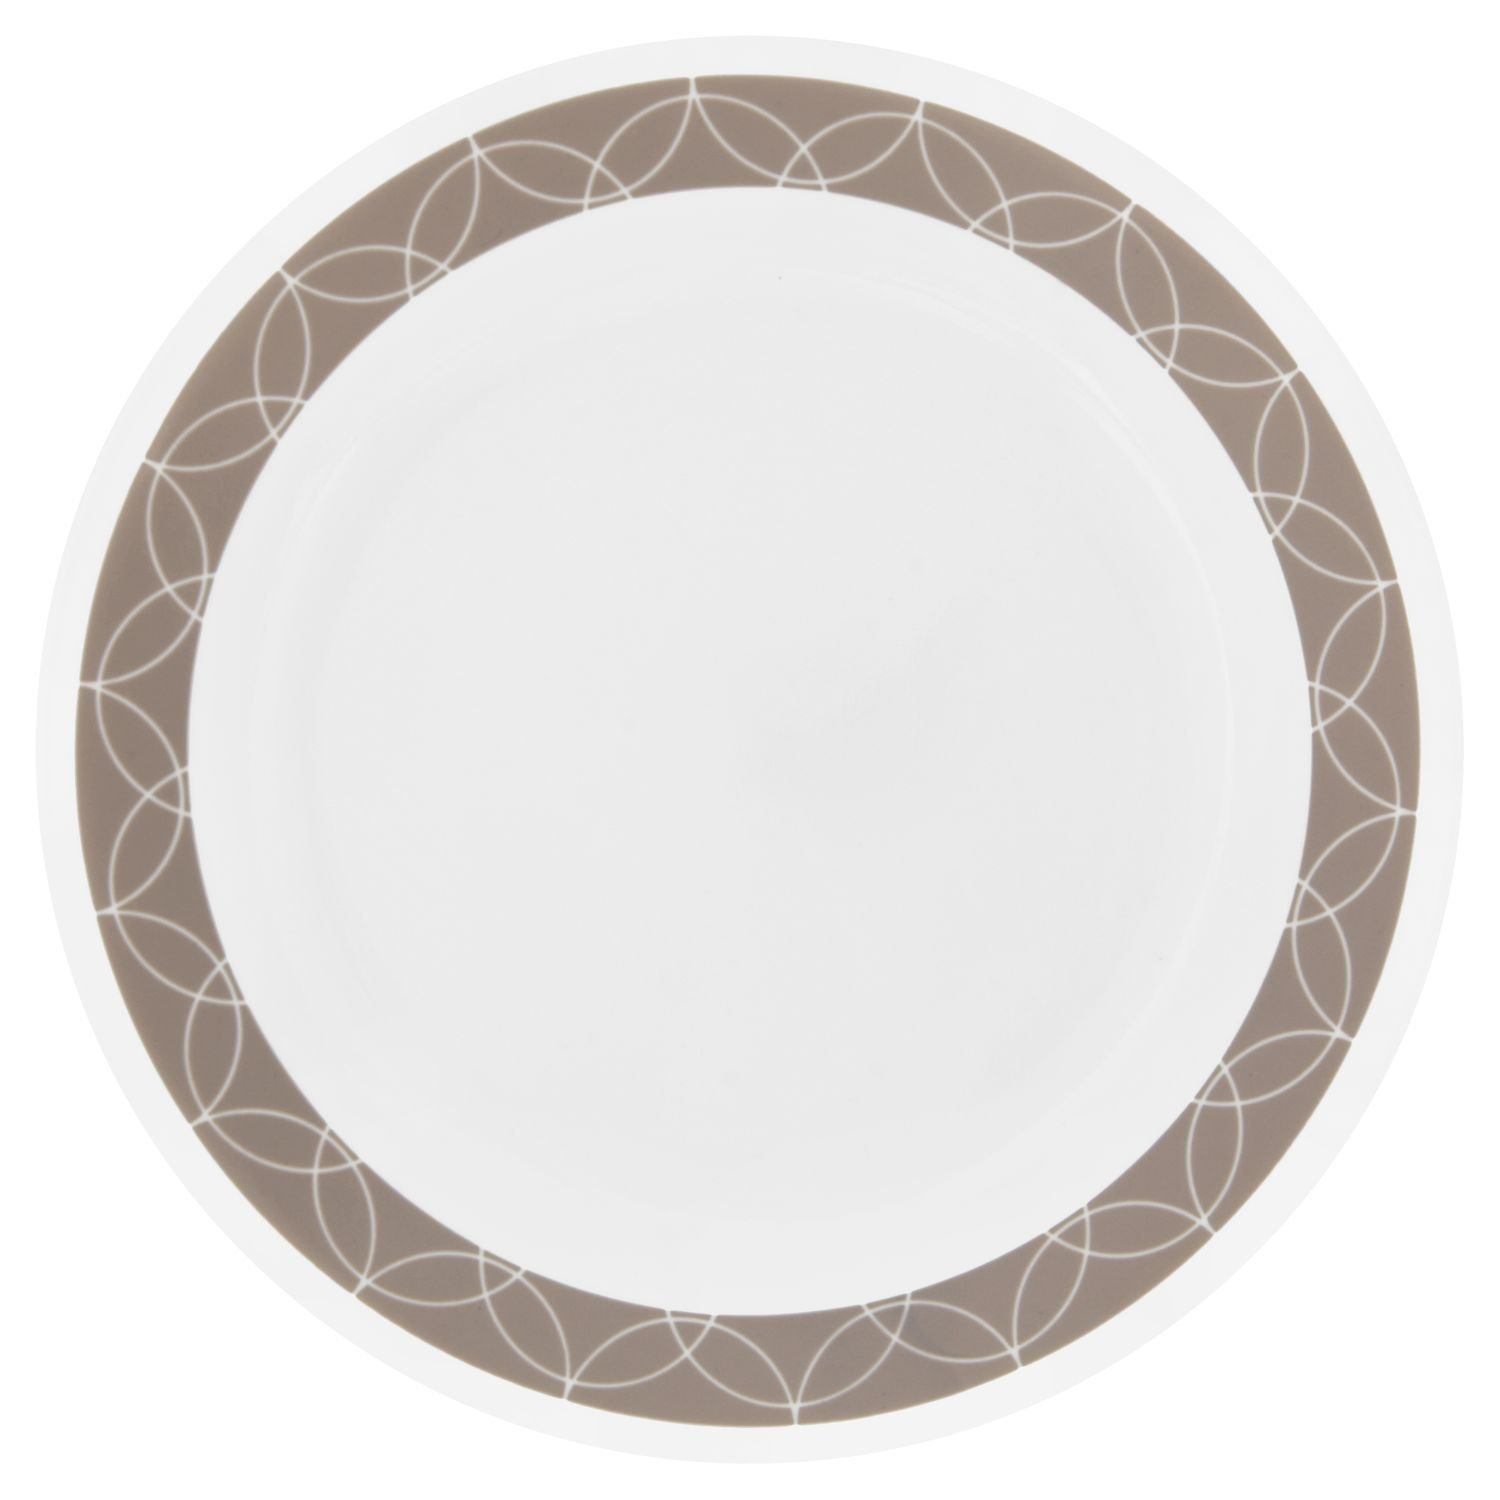 Corelle Livingware Sand Sketch 8.5'' Lunch Plate (Set of 4)